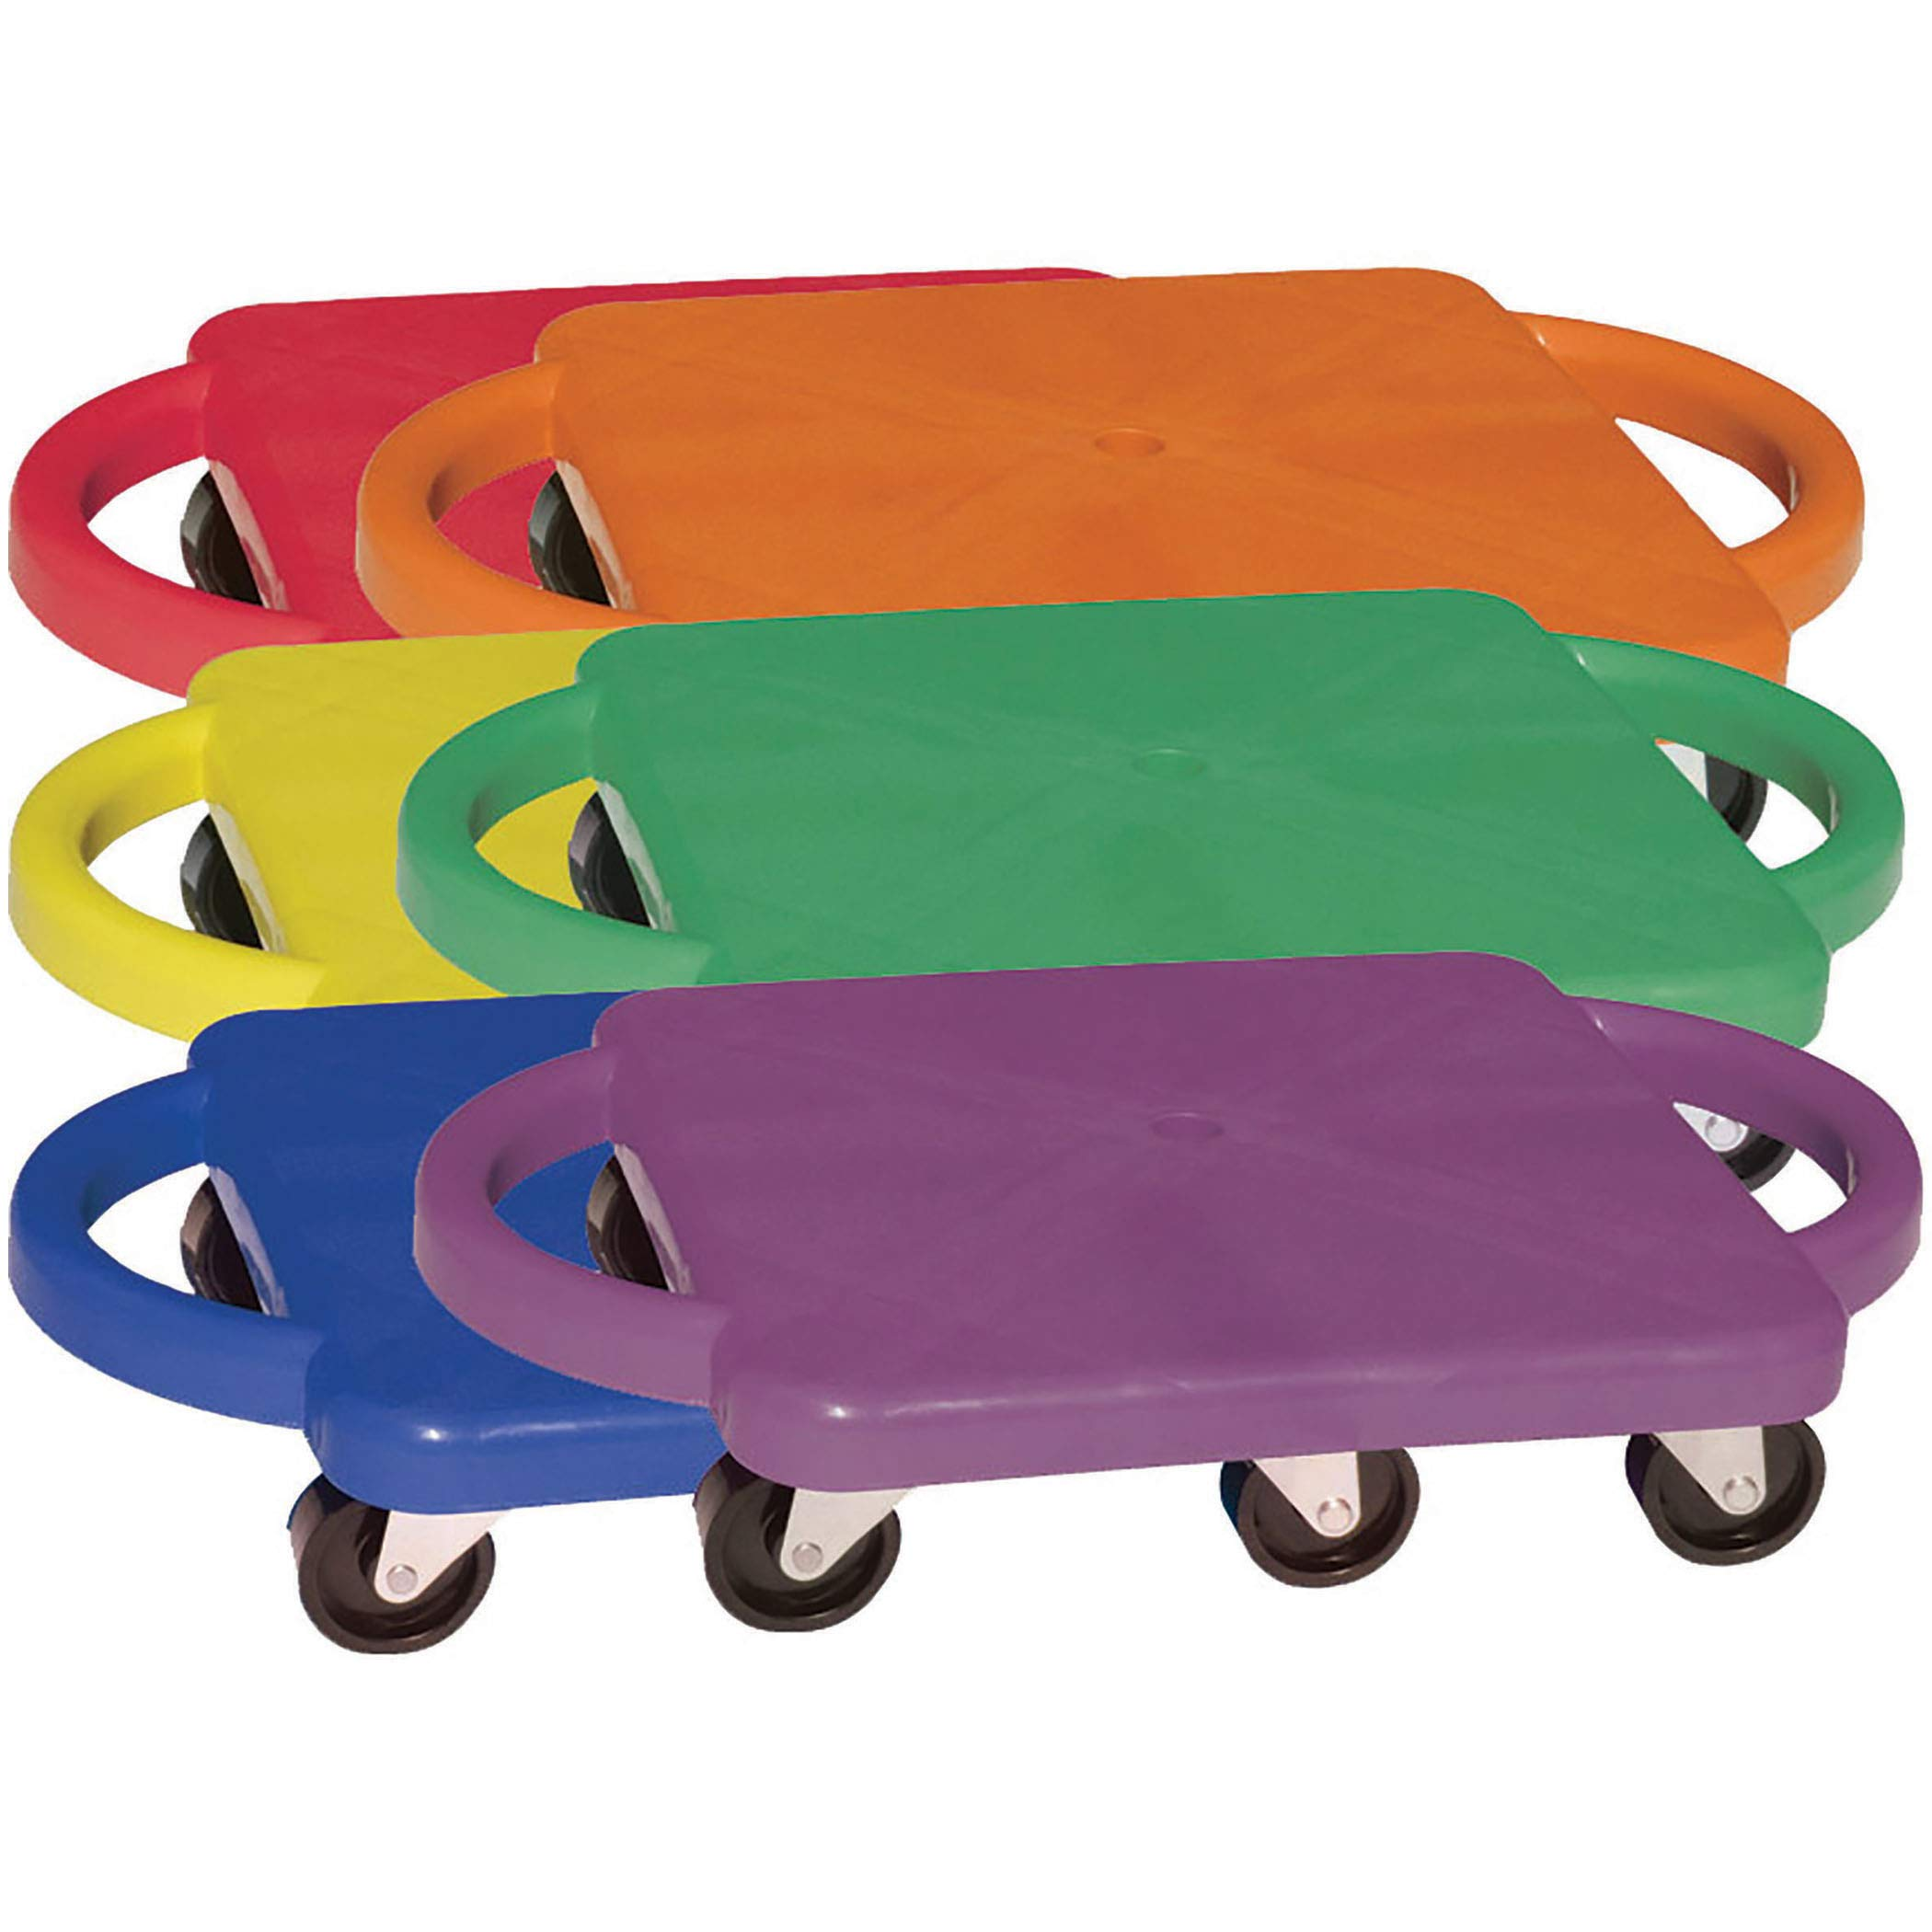 Champion Sports Standard Scooter Board with Handles - Set of 6, Multi-Colored by Champion Sports